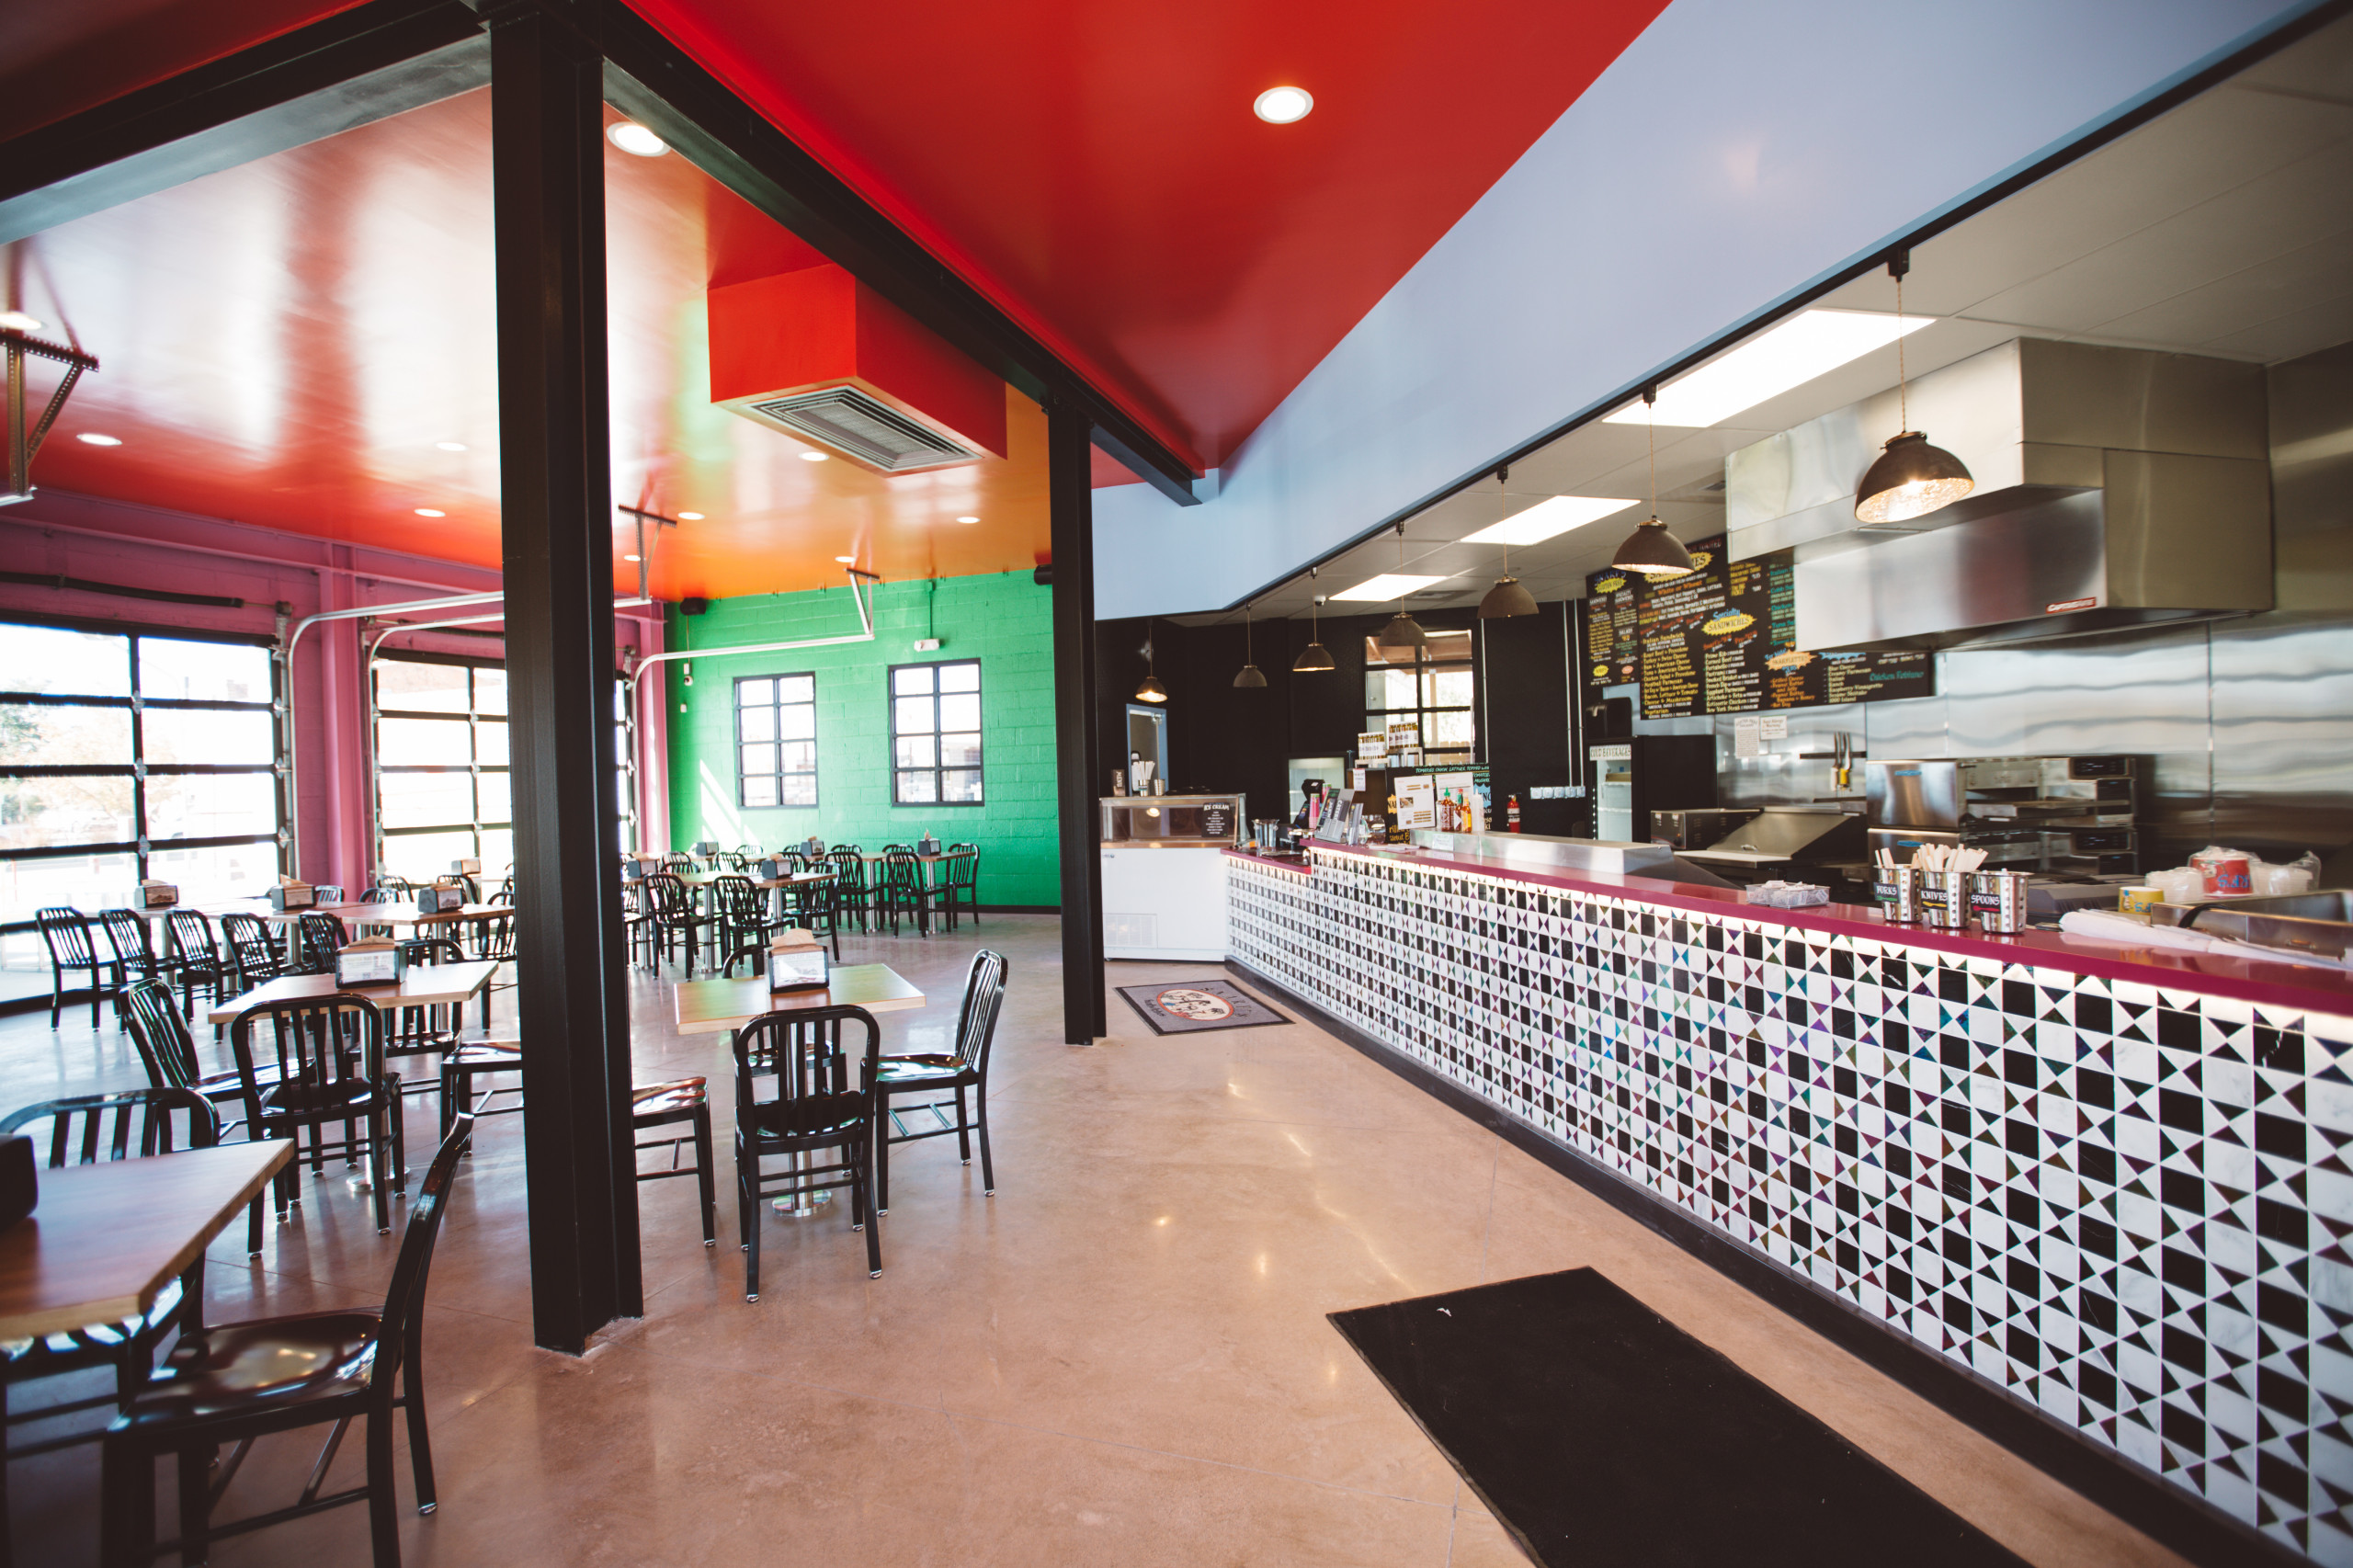 Snarf's Denver - Commercial/Restaurant